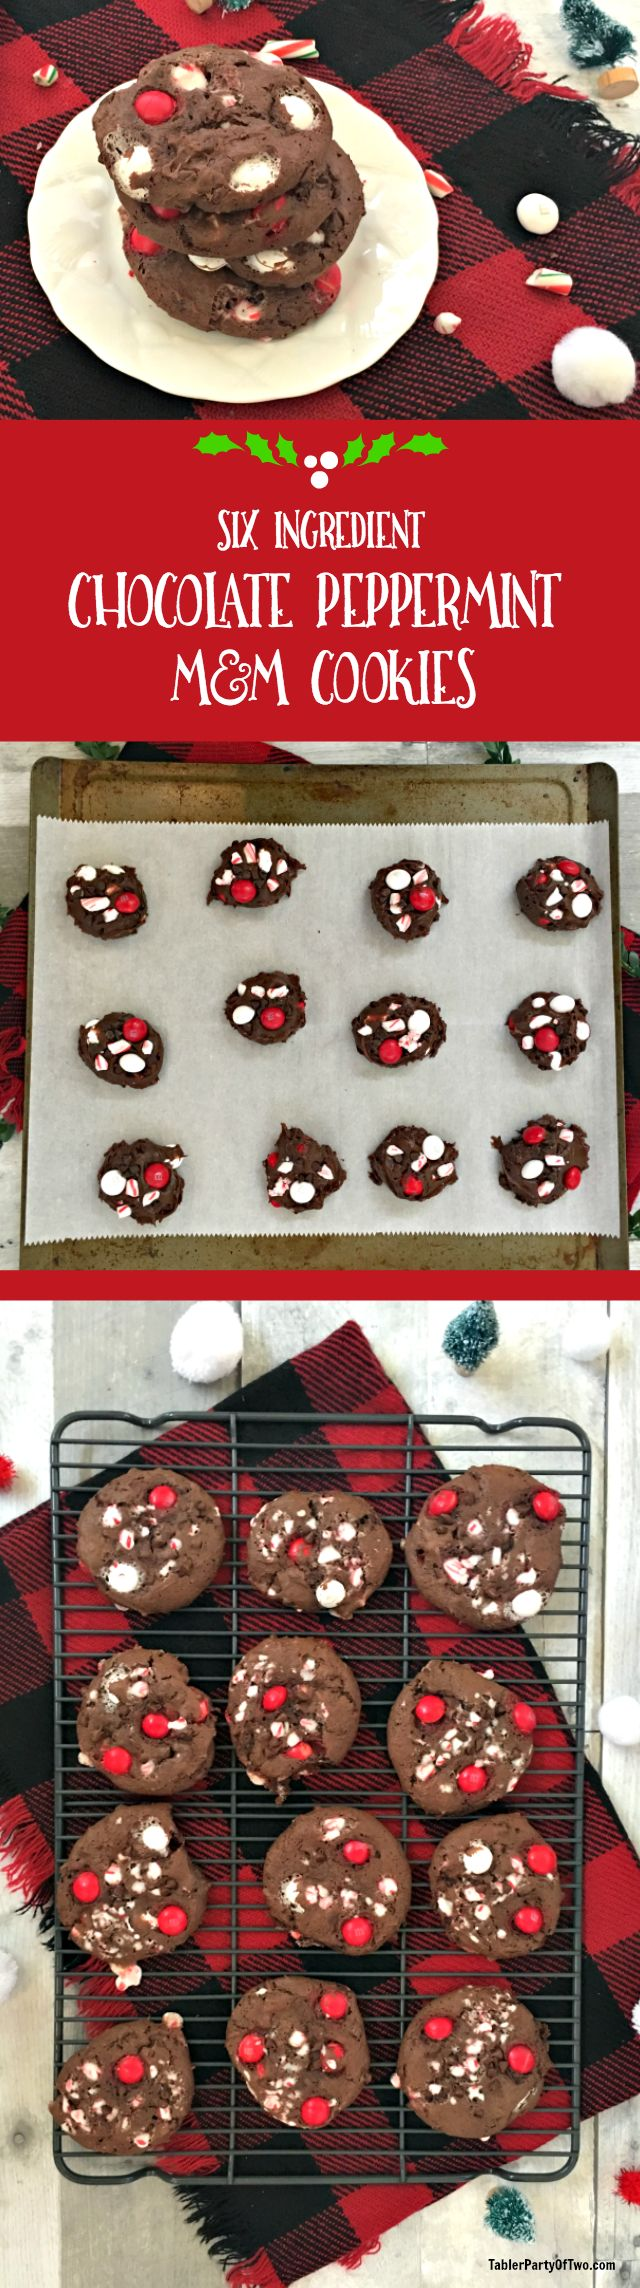 OMG, y'all! These six ingredient chocolate peppermint M&M cookies are to die for! You start with a box of devil's food cake mix and then add just 5 more ingredients. NO ONE will know you didn't start from scratch! Perfect for your holiday party or cookie exchange. TablerPartyofTwo.com